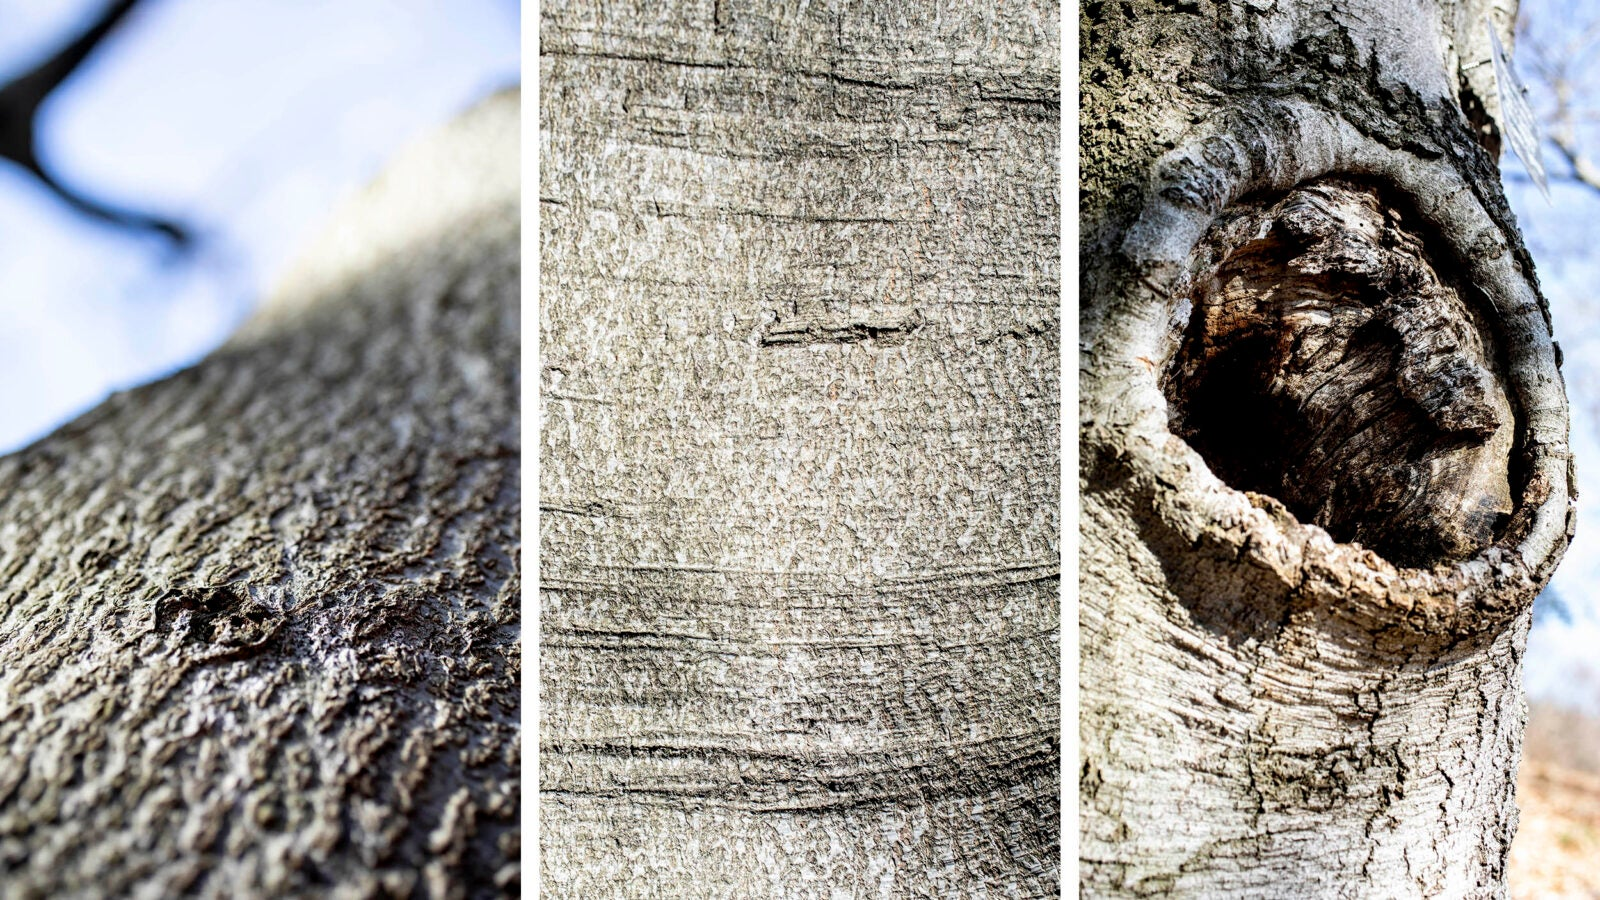 Close up textures of the bark of the Beech Tree collection on Beech Path in the Arnold Arboretum.